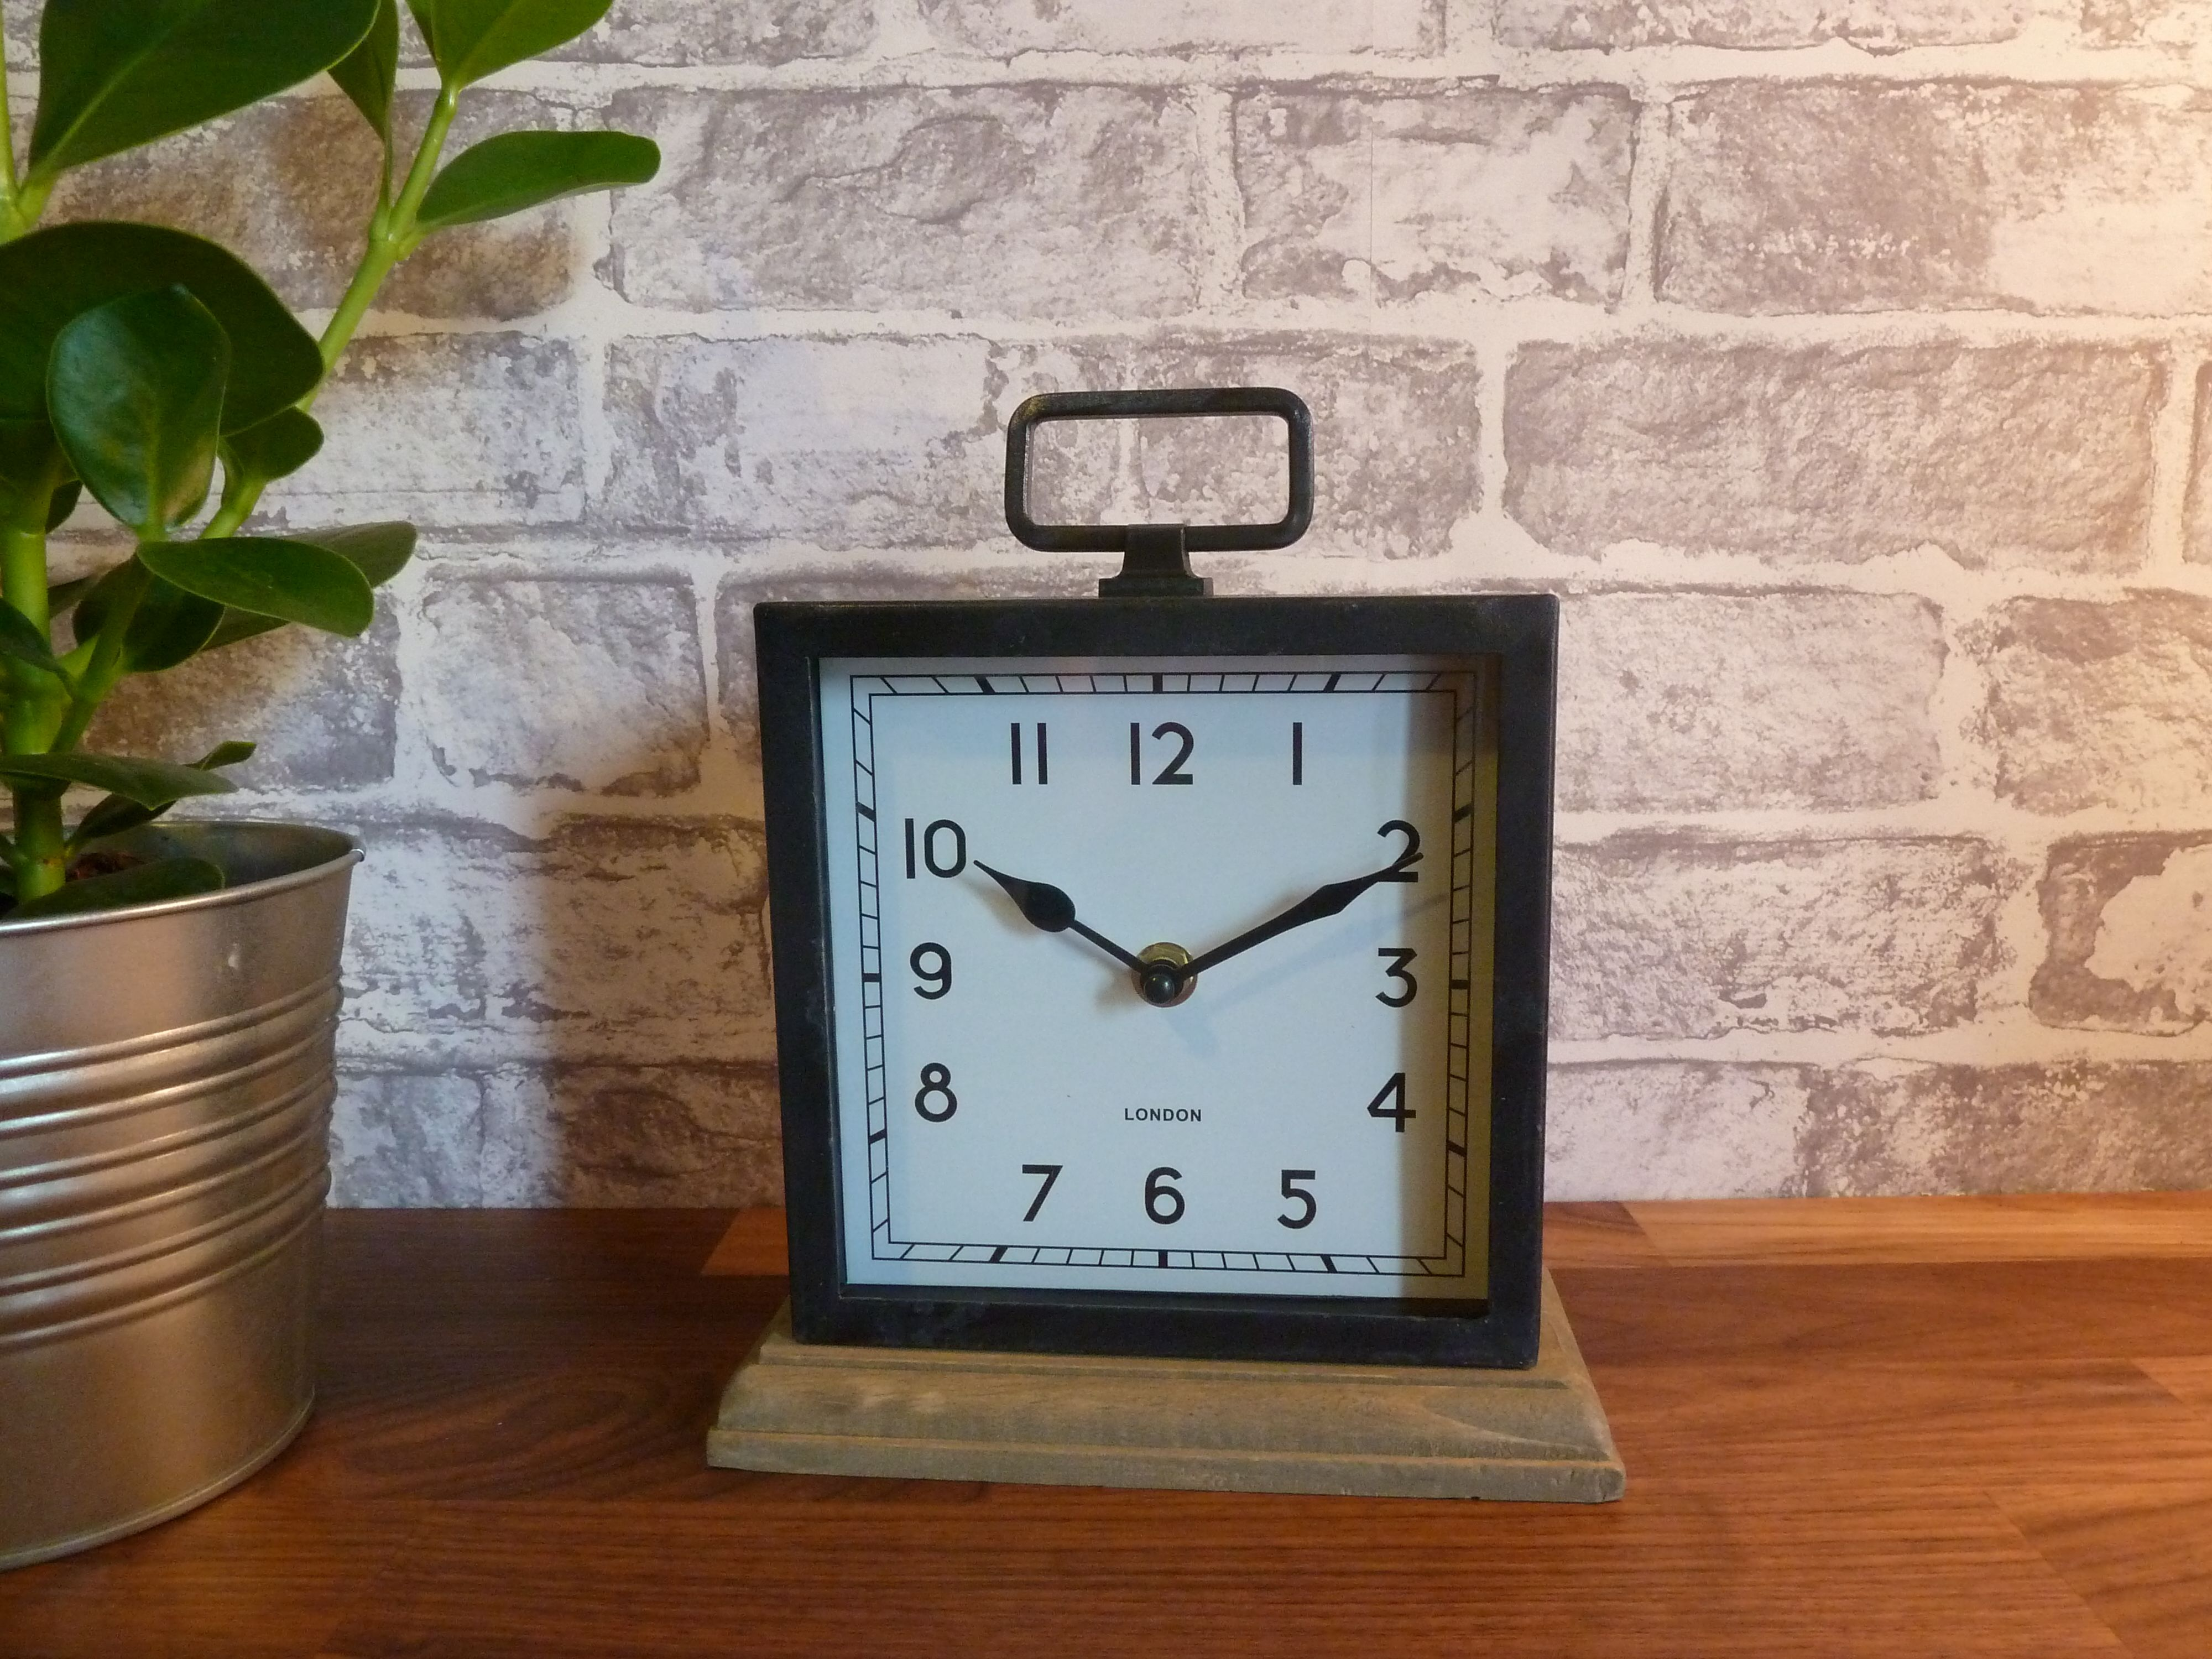 Rustic Distressed Metal Wood Mantel Clock A Lovely Distressed Iron Metal Mantel Clock With A Wooden Base Its White Face With Clock Mantel Clock Mantle Clock